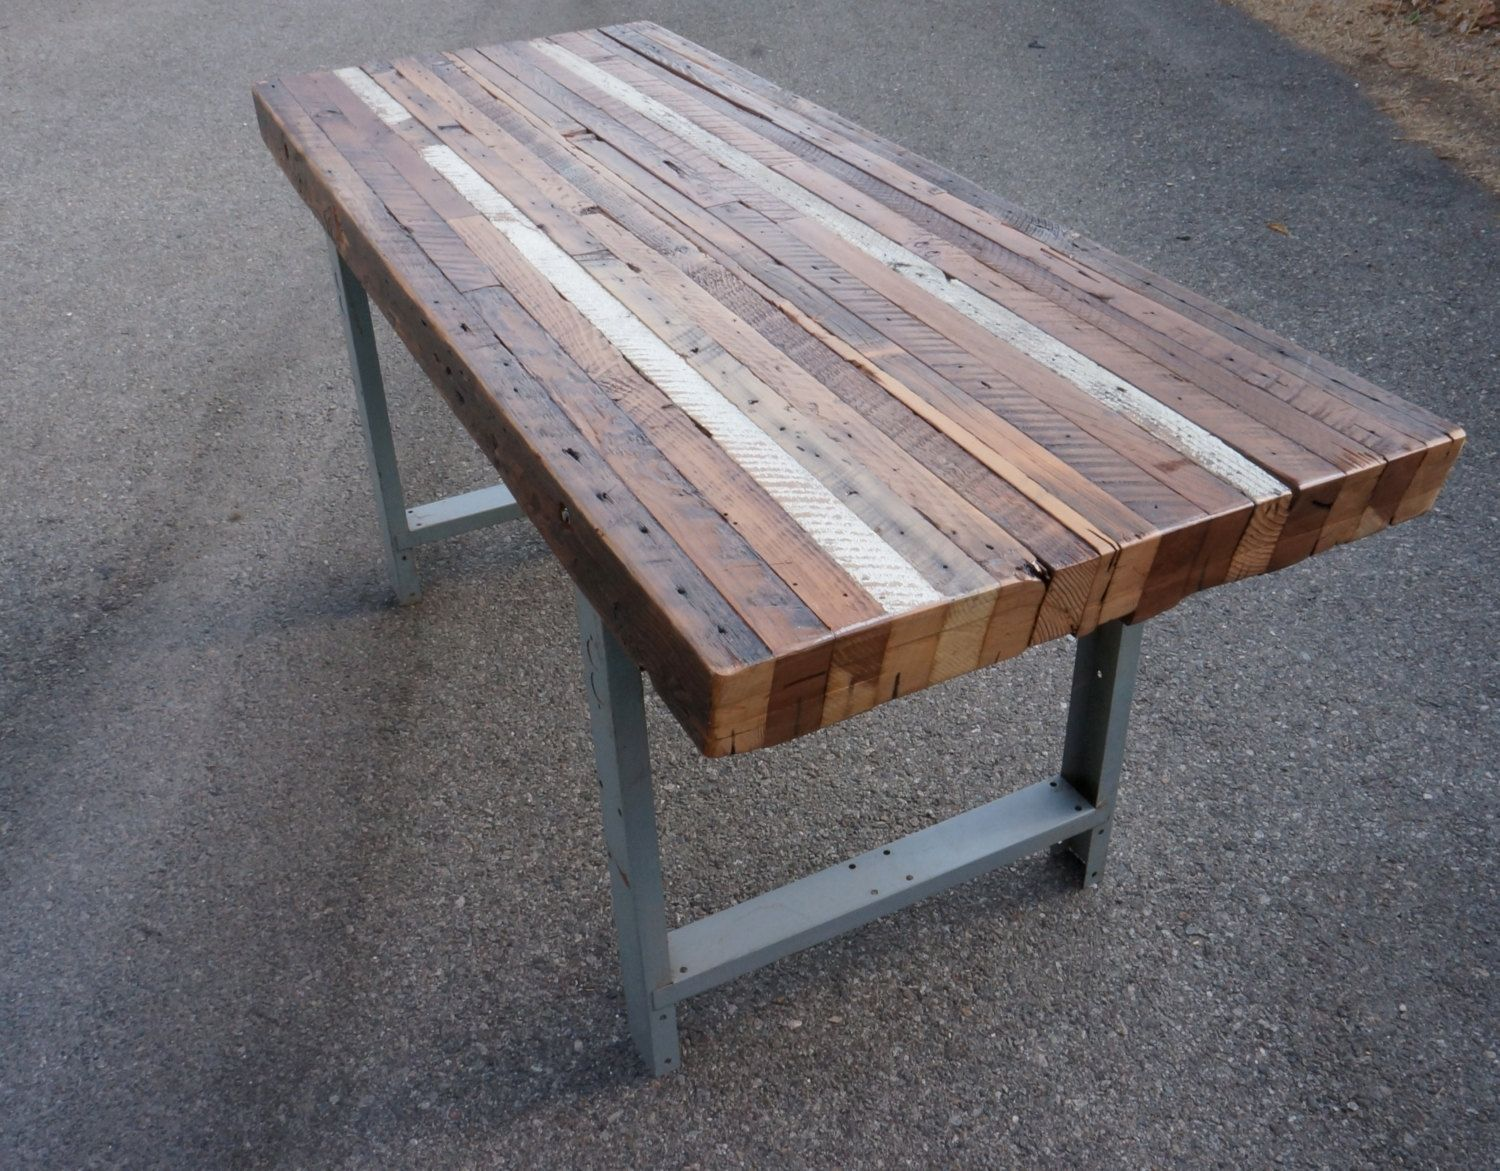 Handmade Custom Outdoor Indoor Rustic Industrial Reclaimed Wood Dining Table Coffee Table By